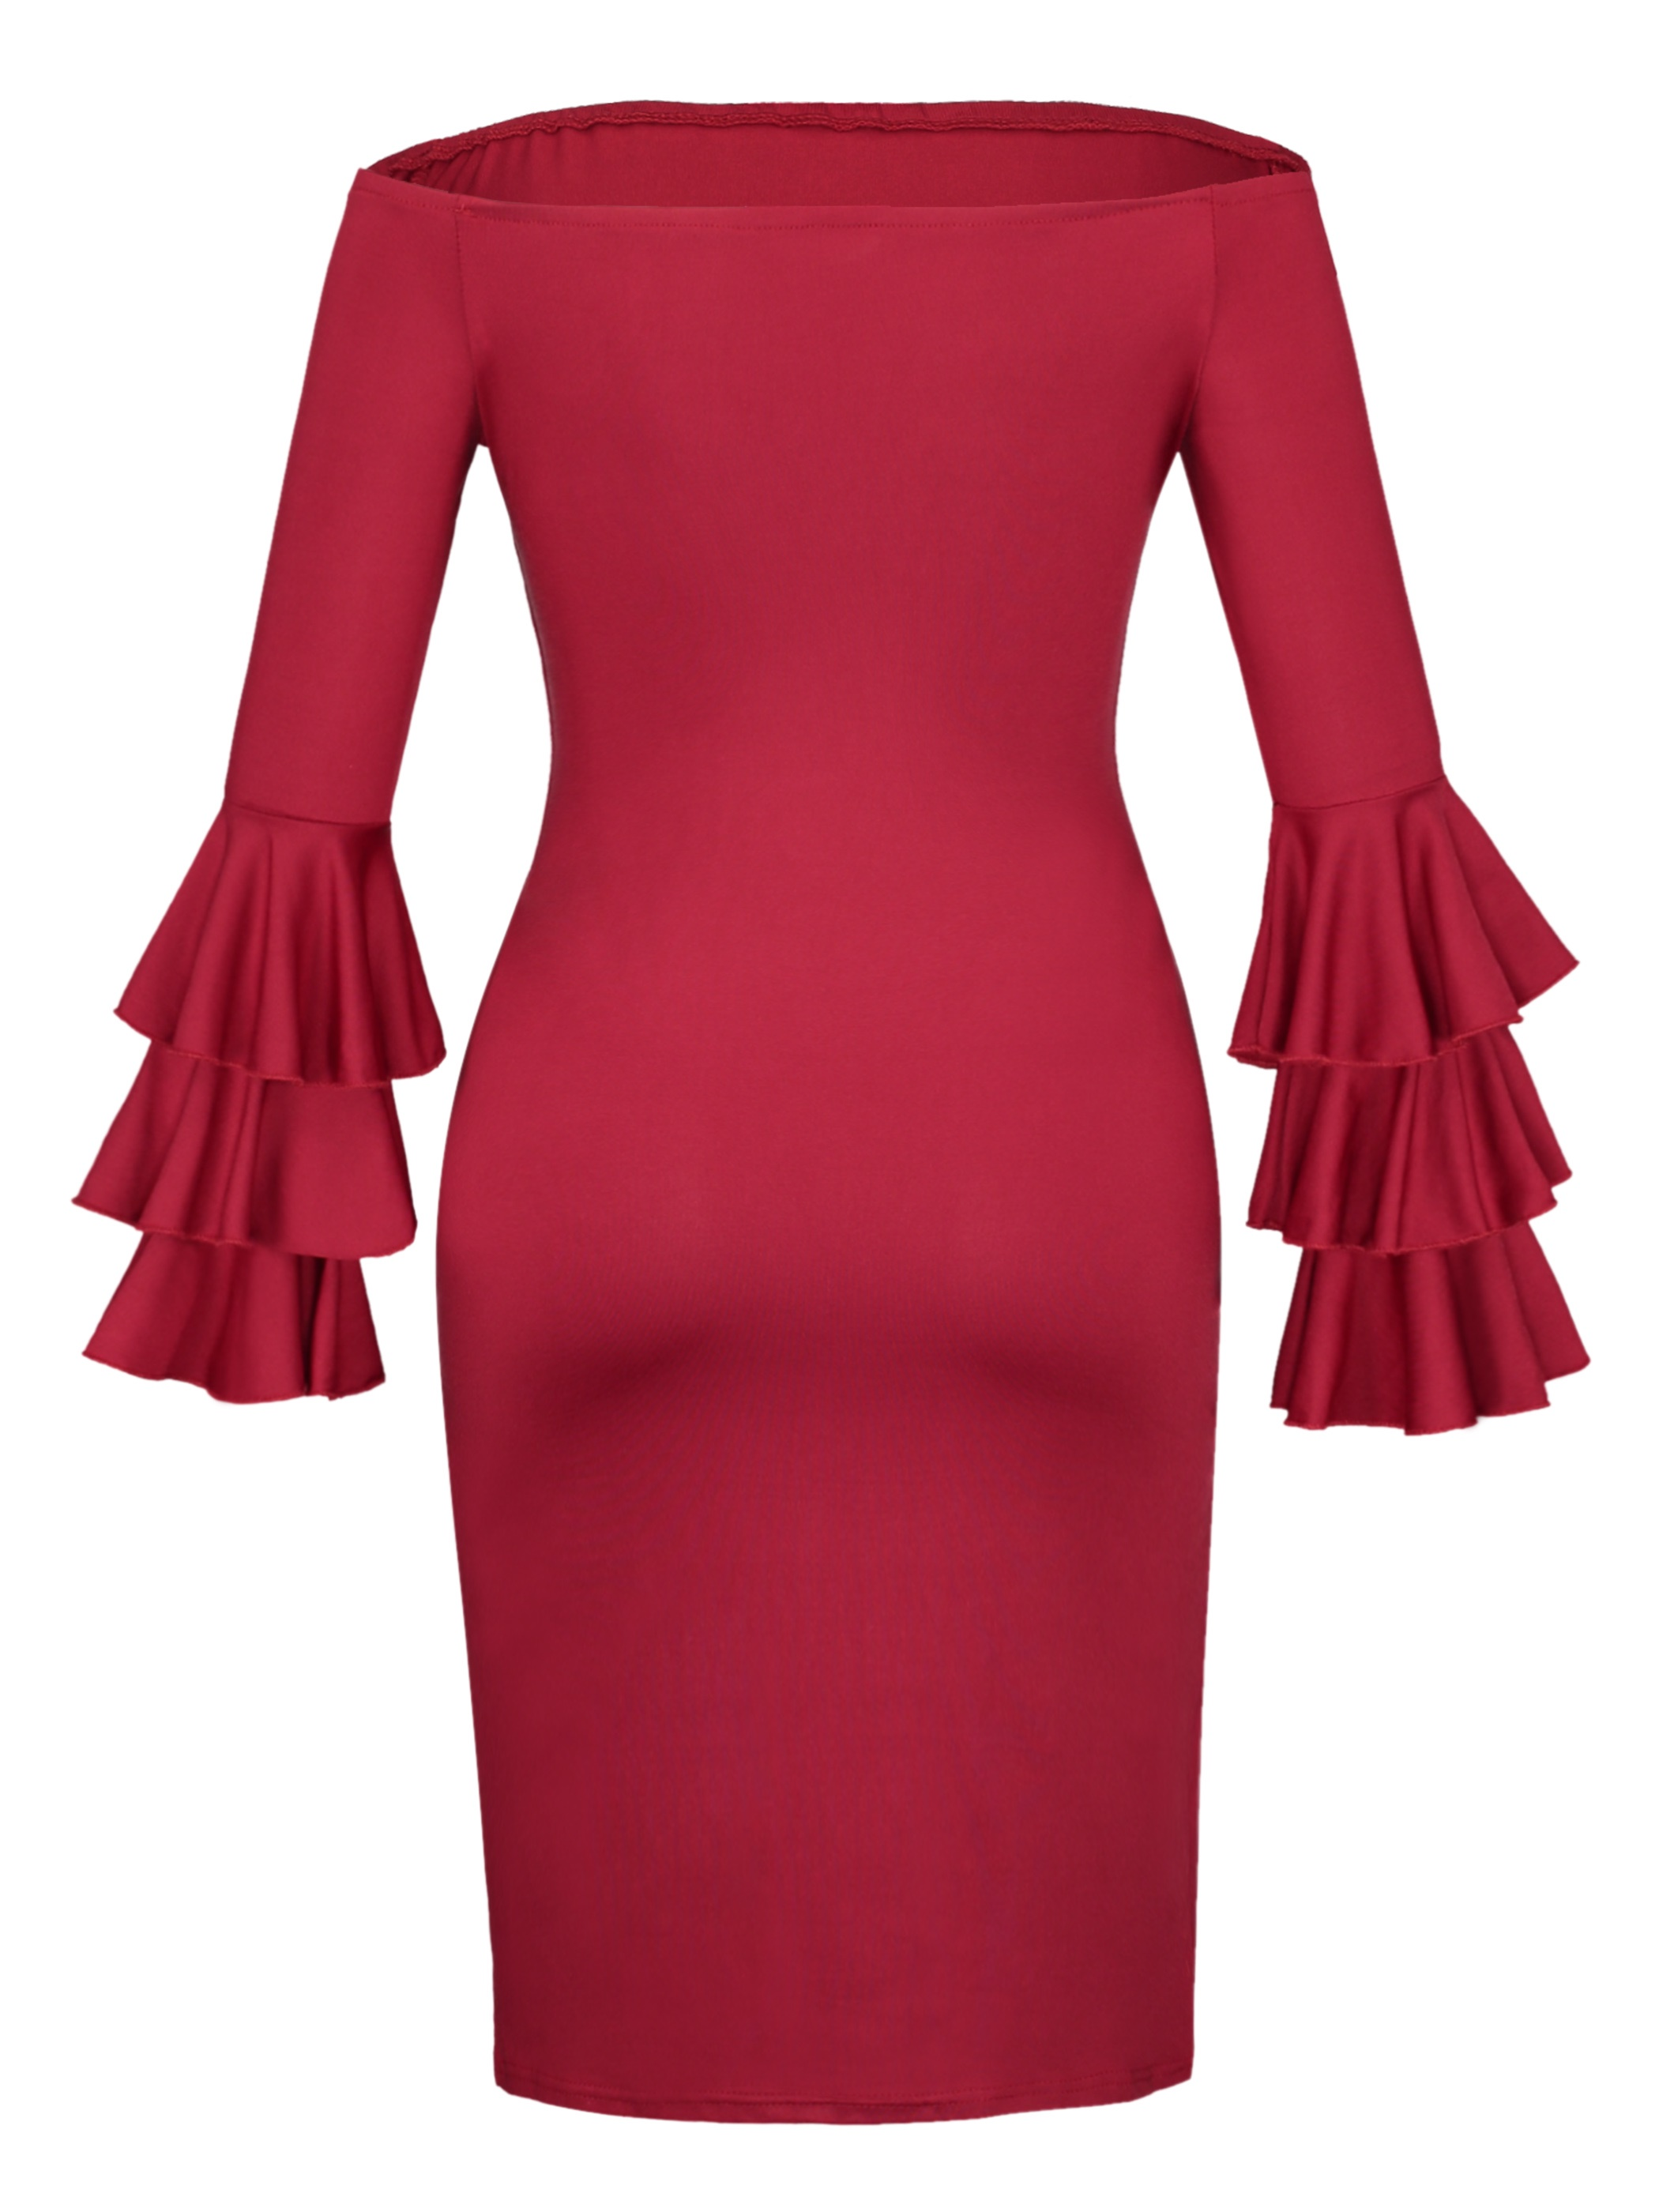 Ericdress Off-the-Shoulder Ruffle Sleeve Bodycon Dress